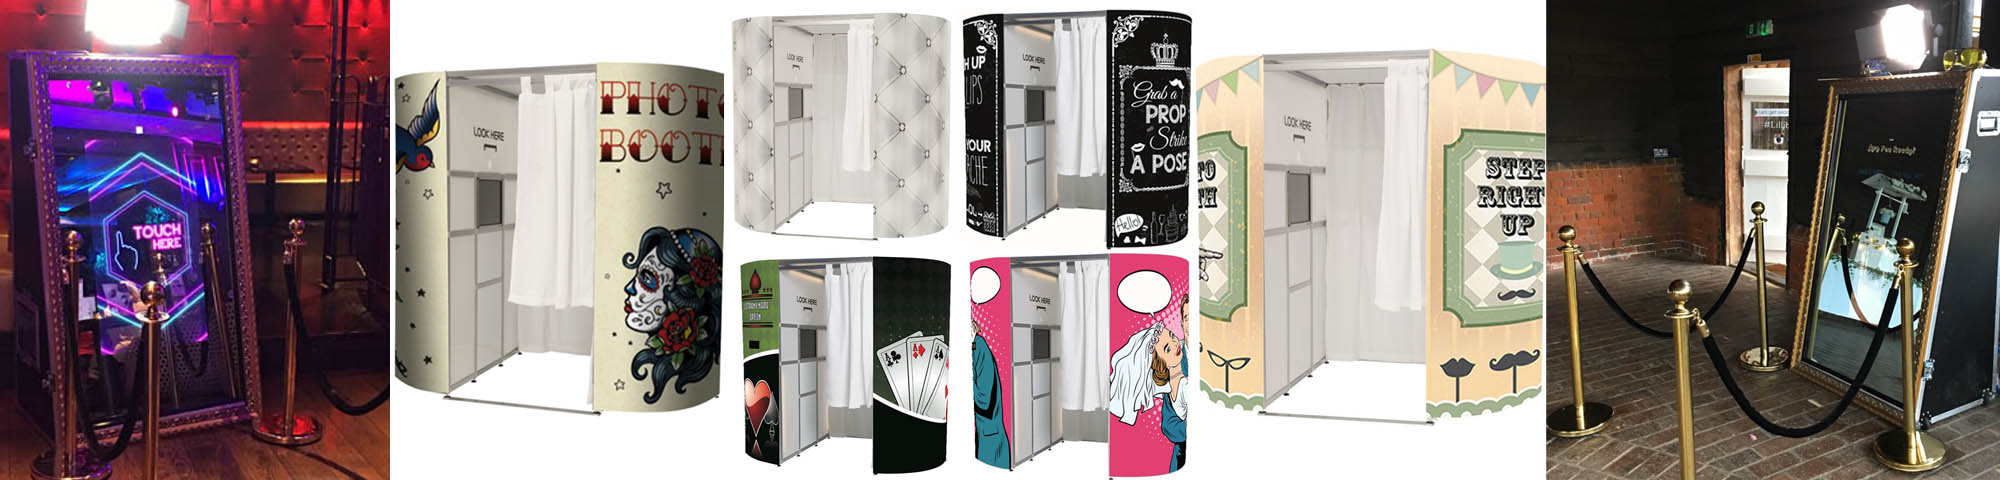 Some of the great photo booths available to hire in Windsor